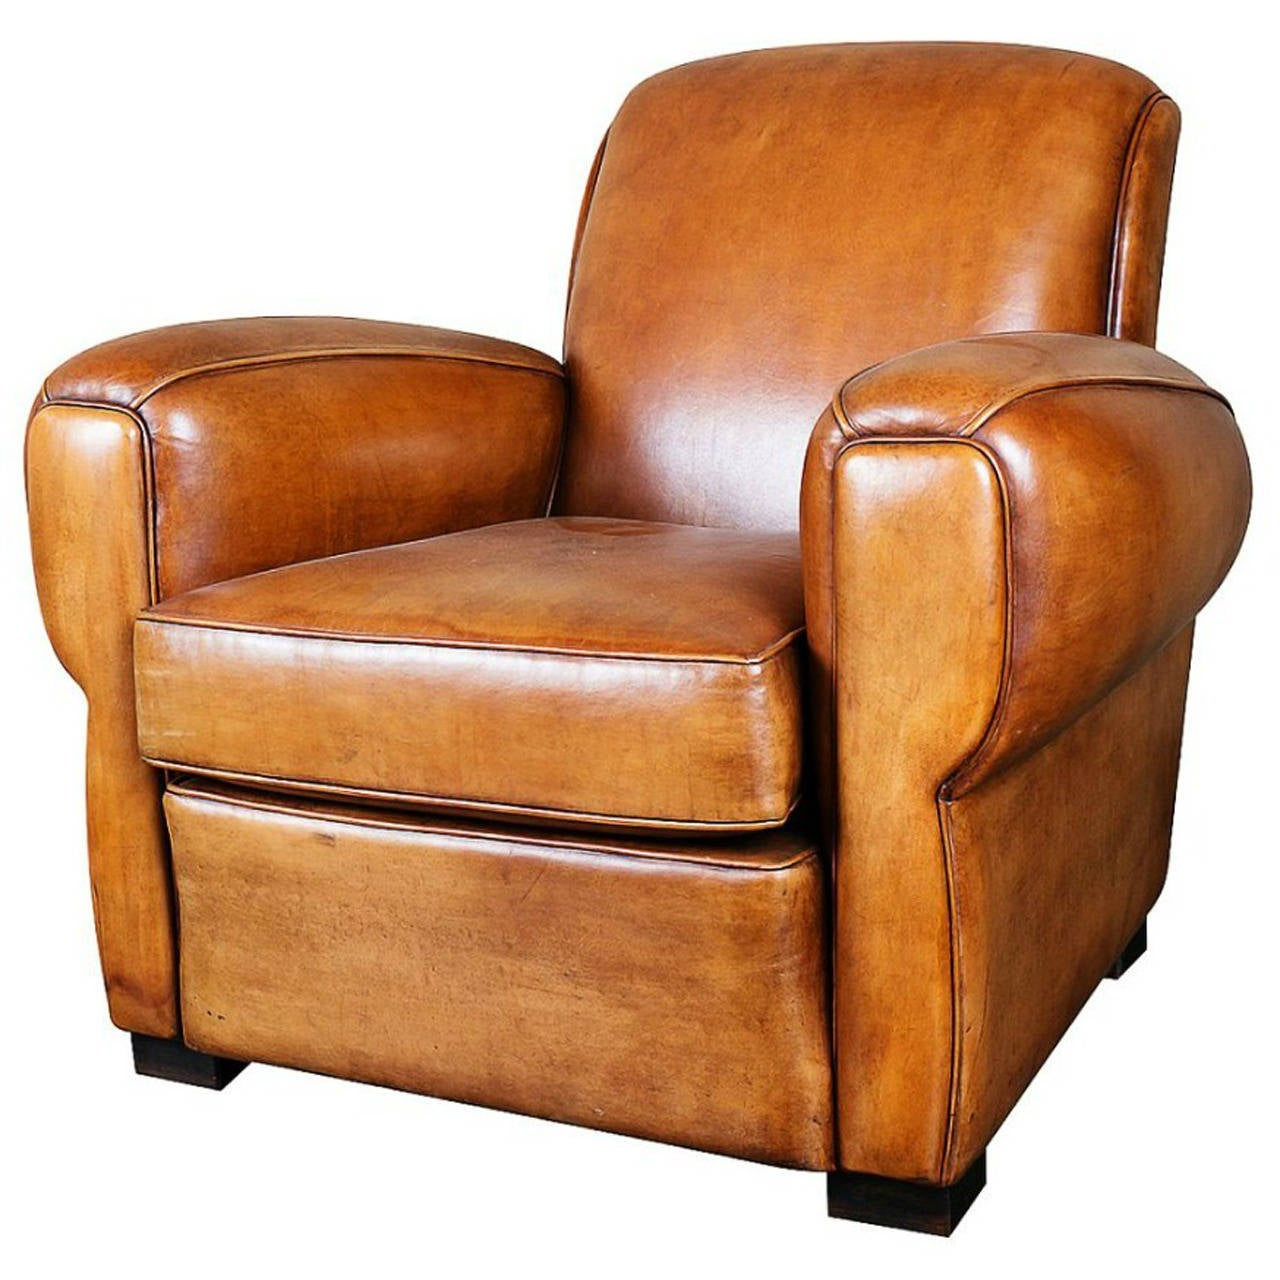 French Art Deco Leather Club Chair 1  sc 1 st  1stDibs & French Art Deco Leather Club Chair at 1stdibs islam-shia.org